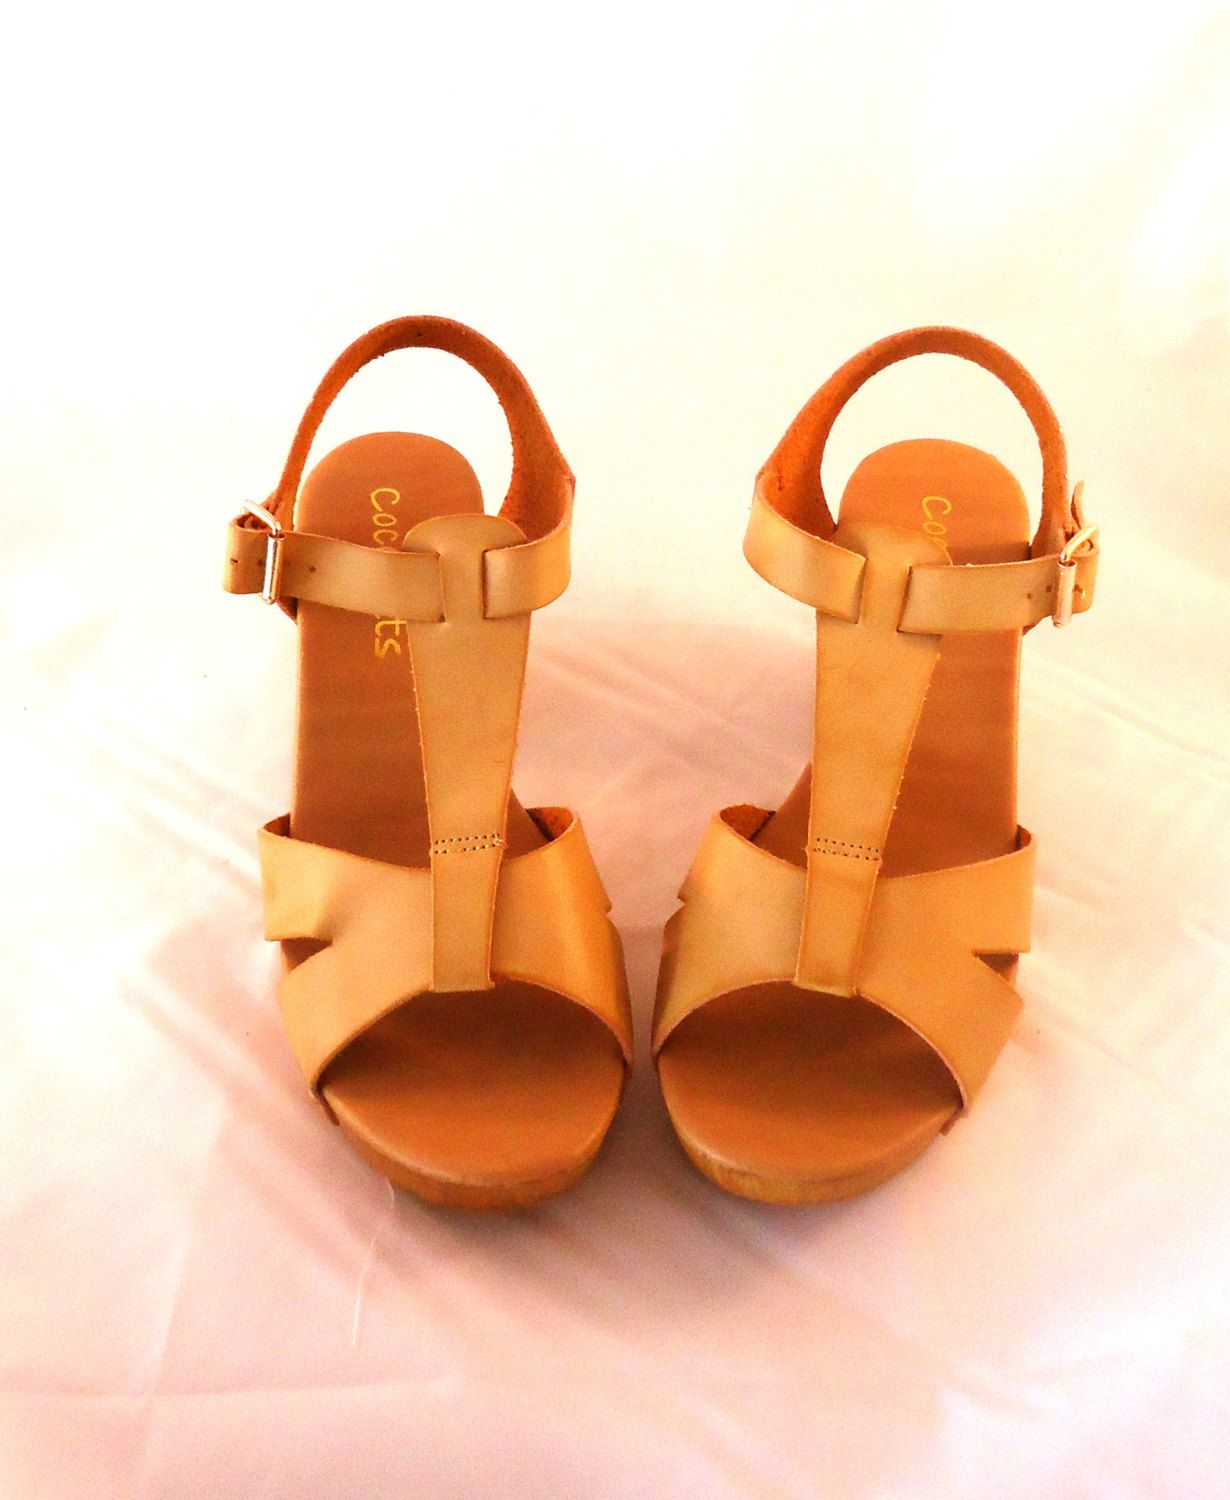 Pin on Vintage Wooden Clogs Shoes